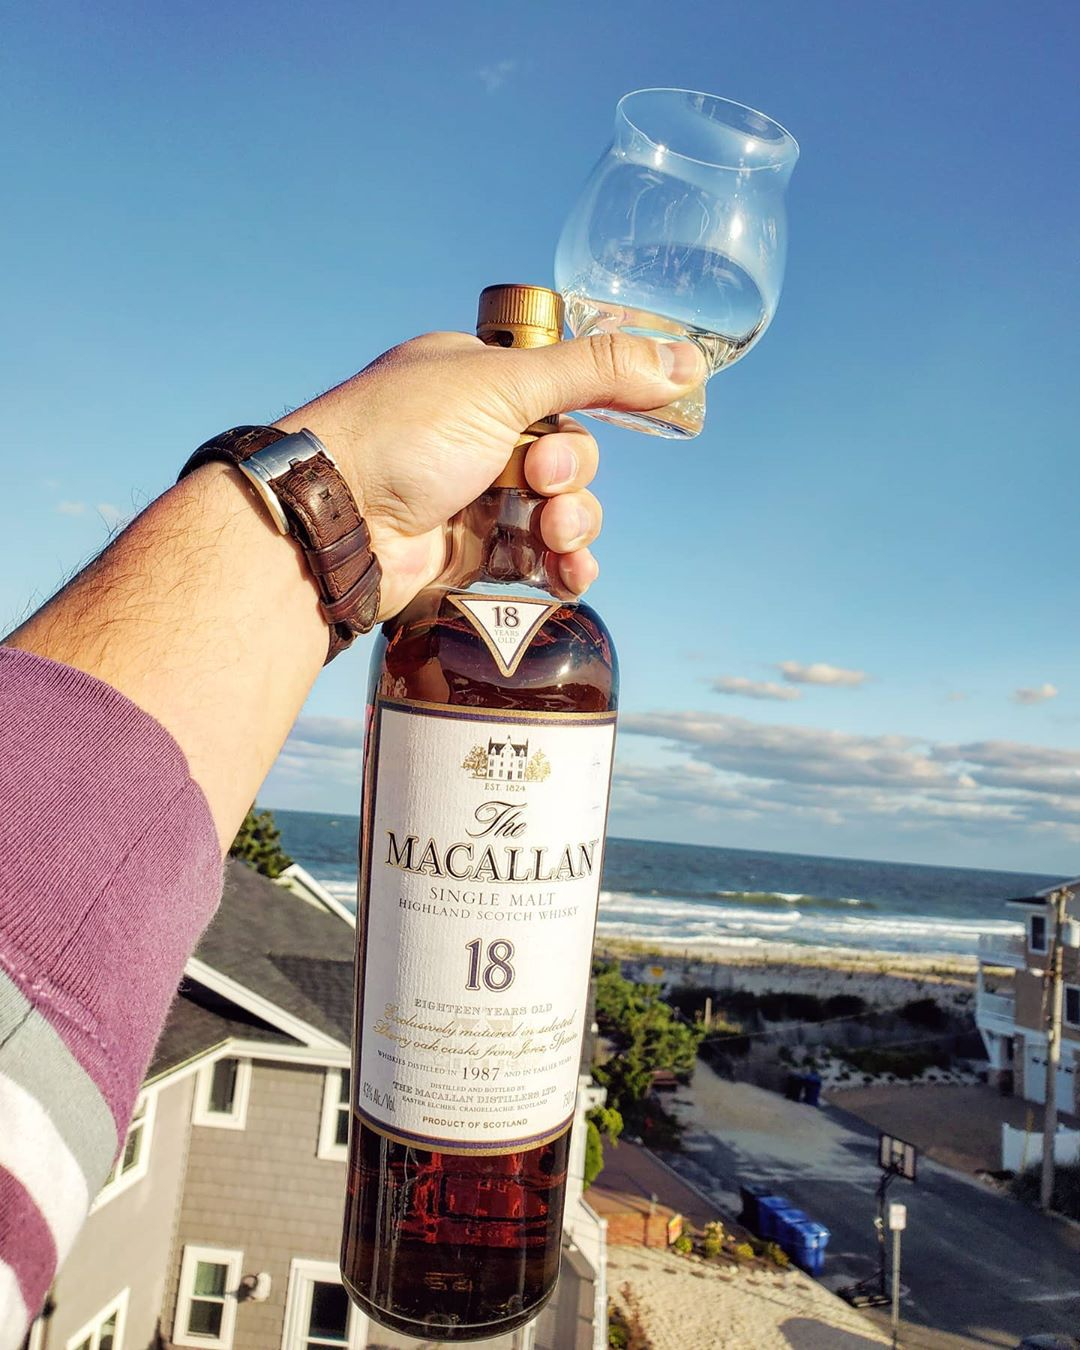 LBI Seems like a good bottle to have on the last day of vacation. Have you had it be…